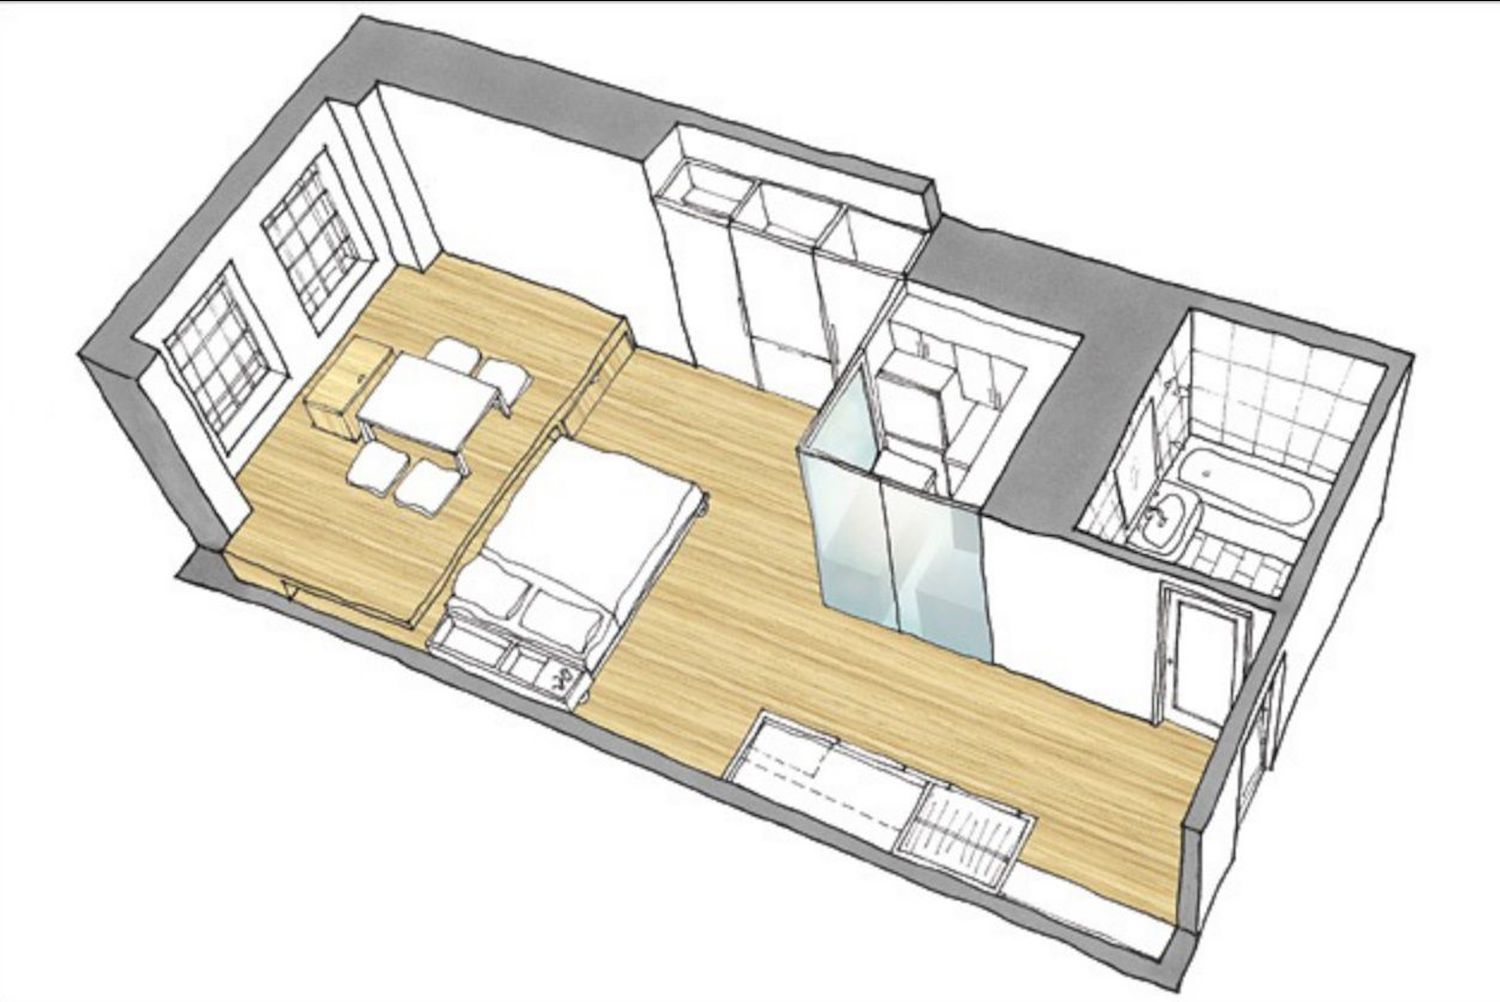 Floor plan with a fold-down bed